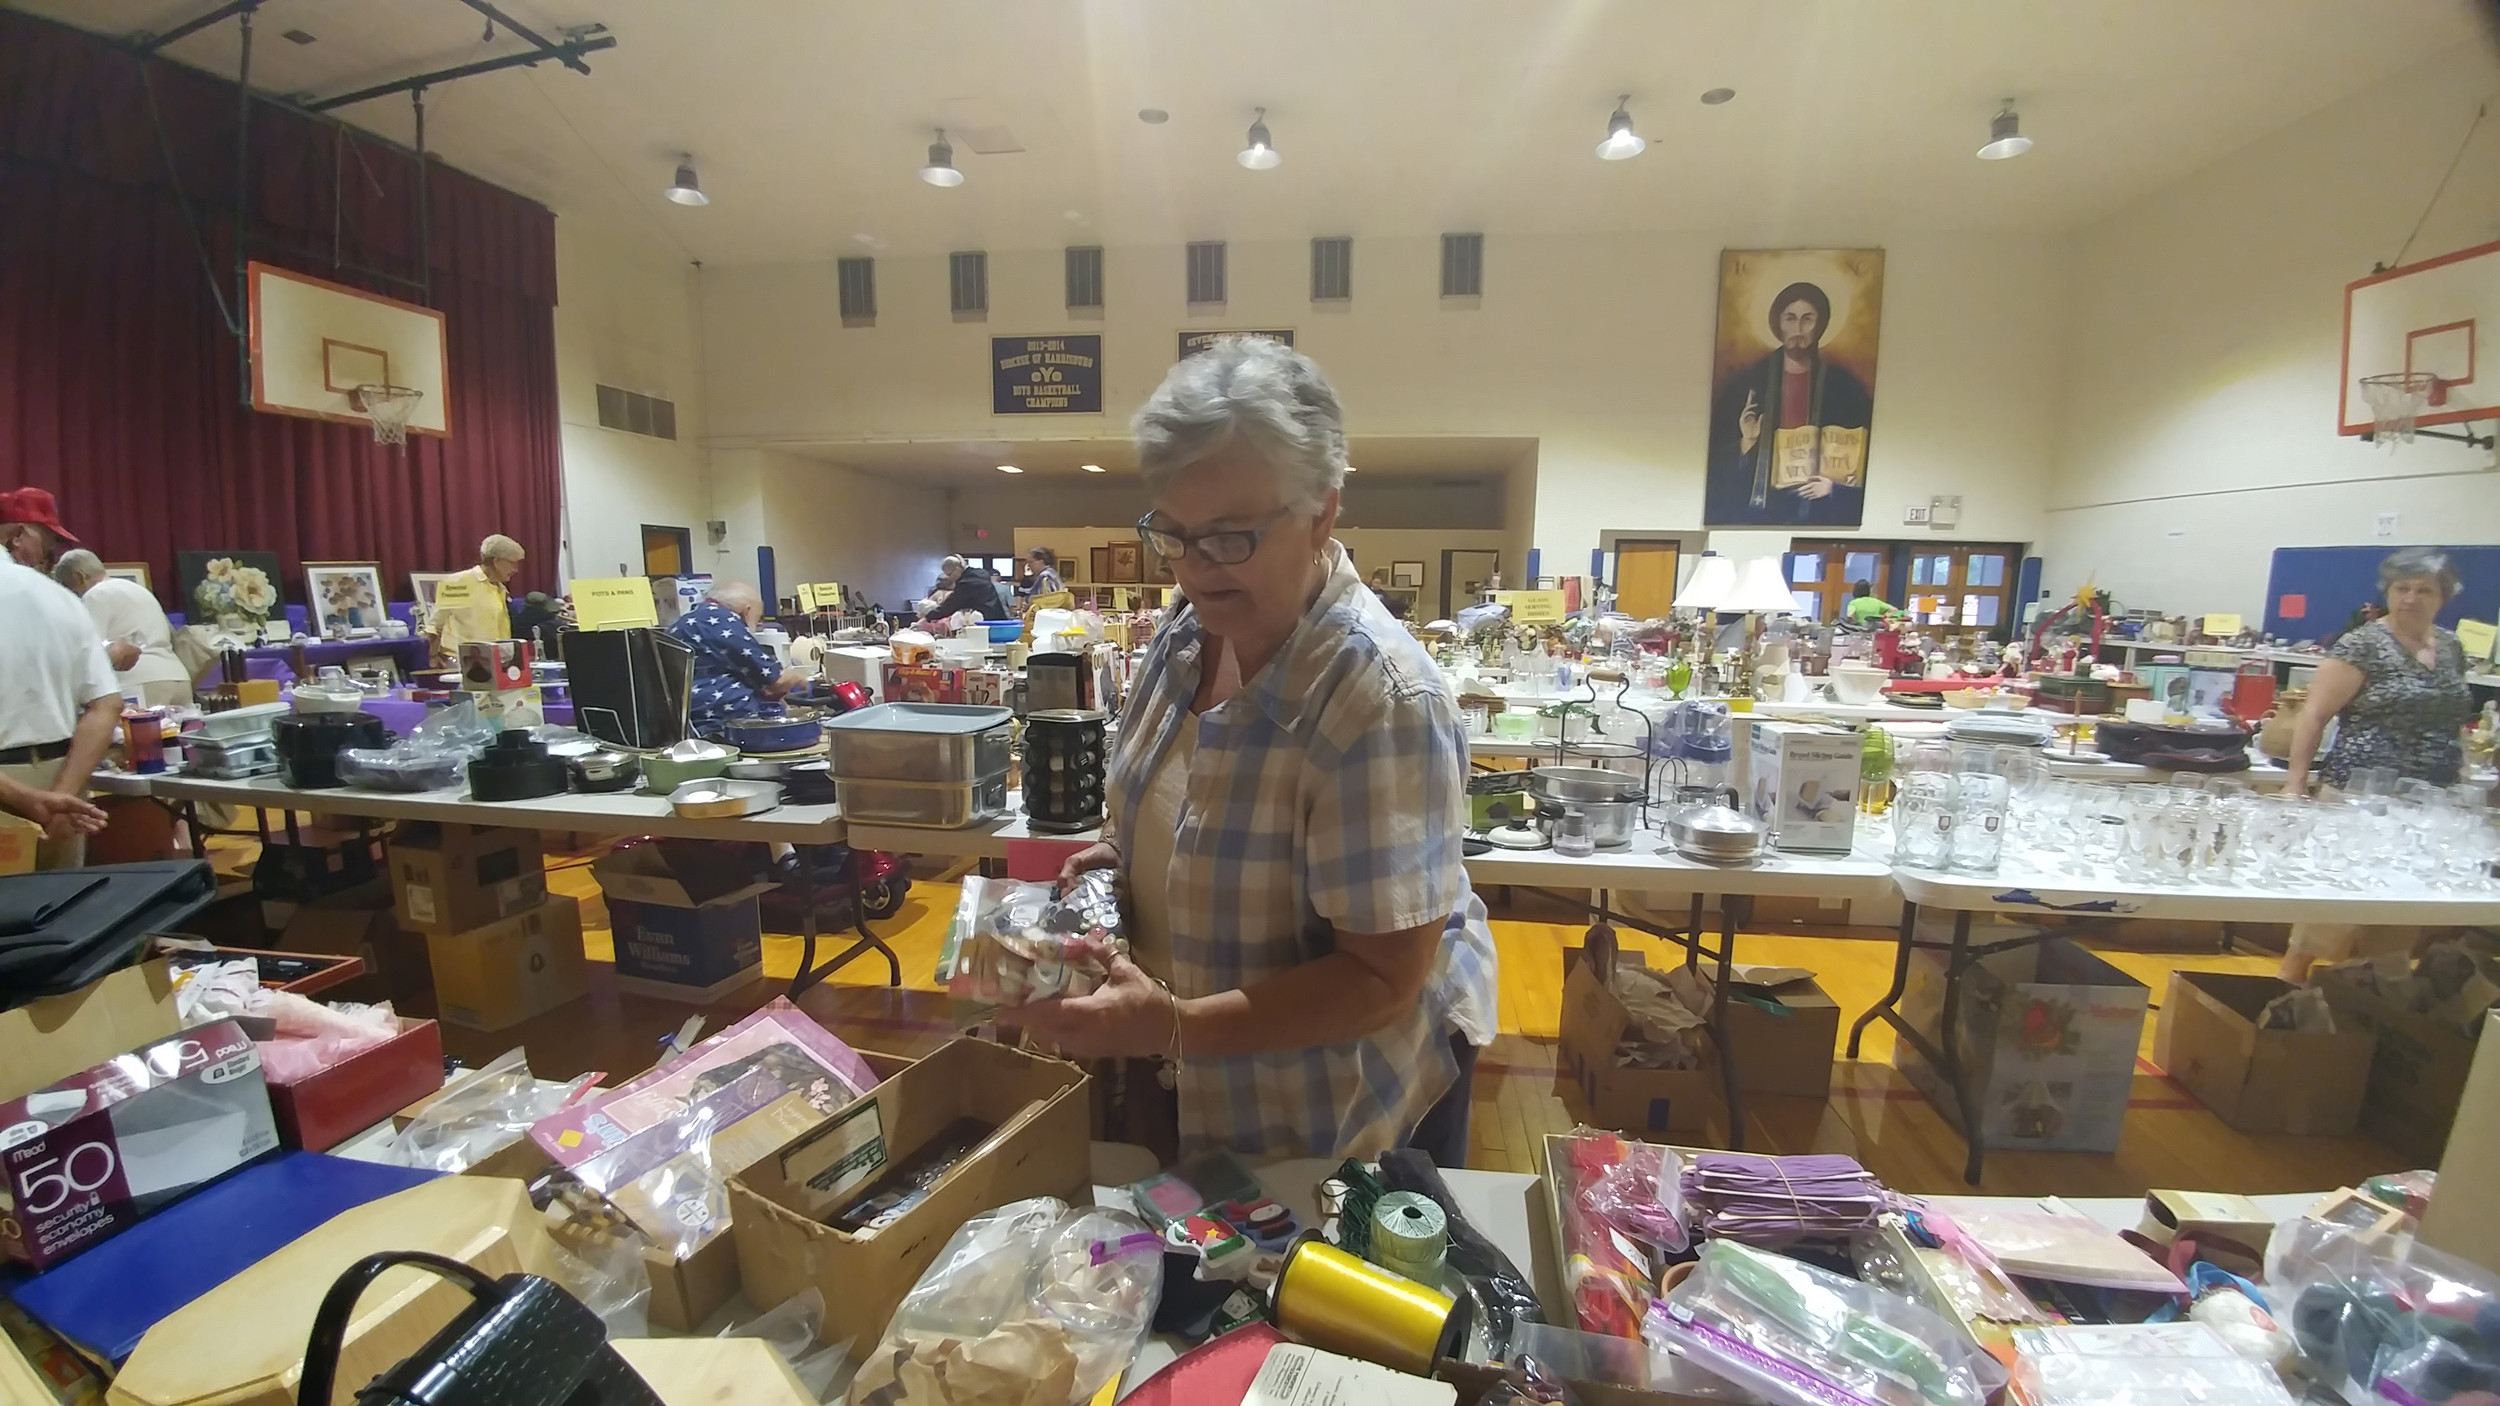 Donna Fallinger examines the items for sale at the Seven Sorrows Festival flea market held in the gym Thursday evening.